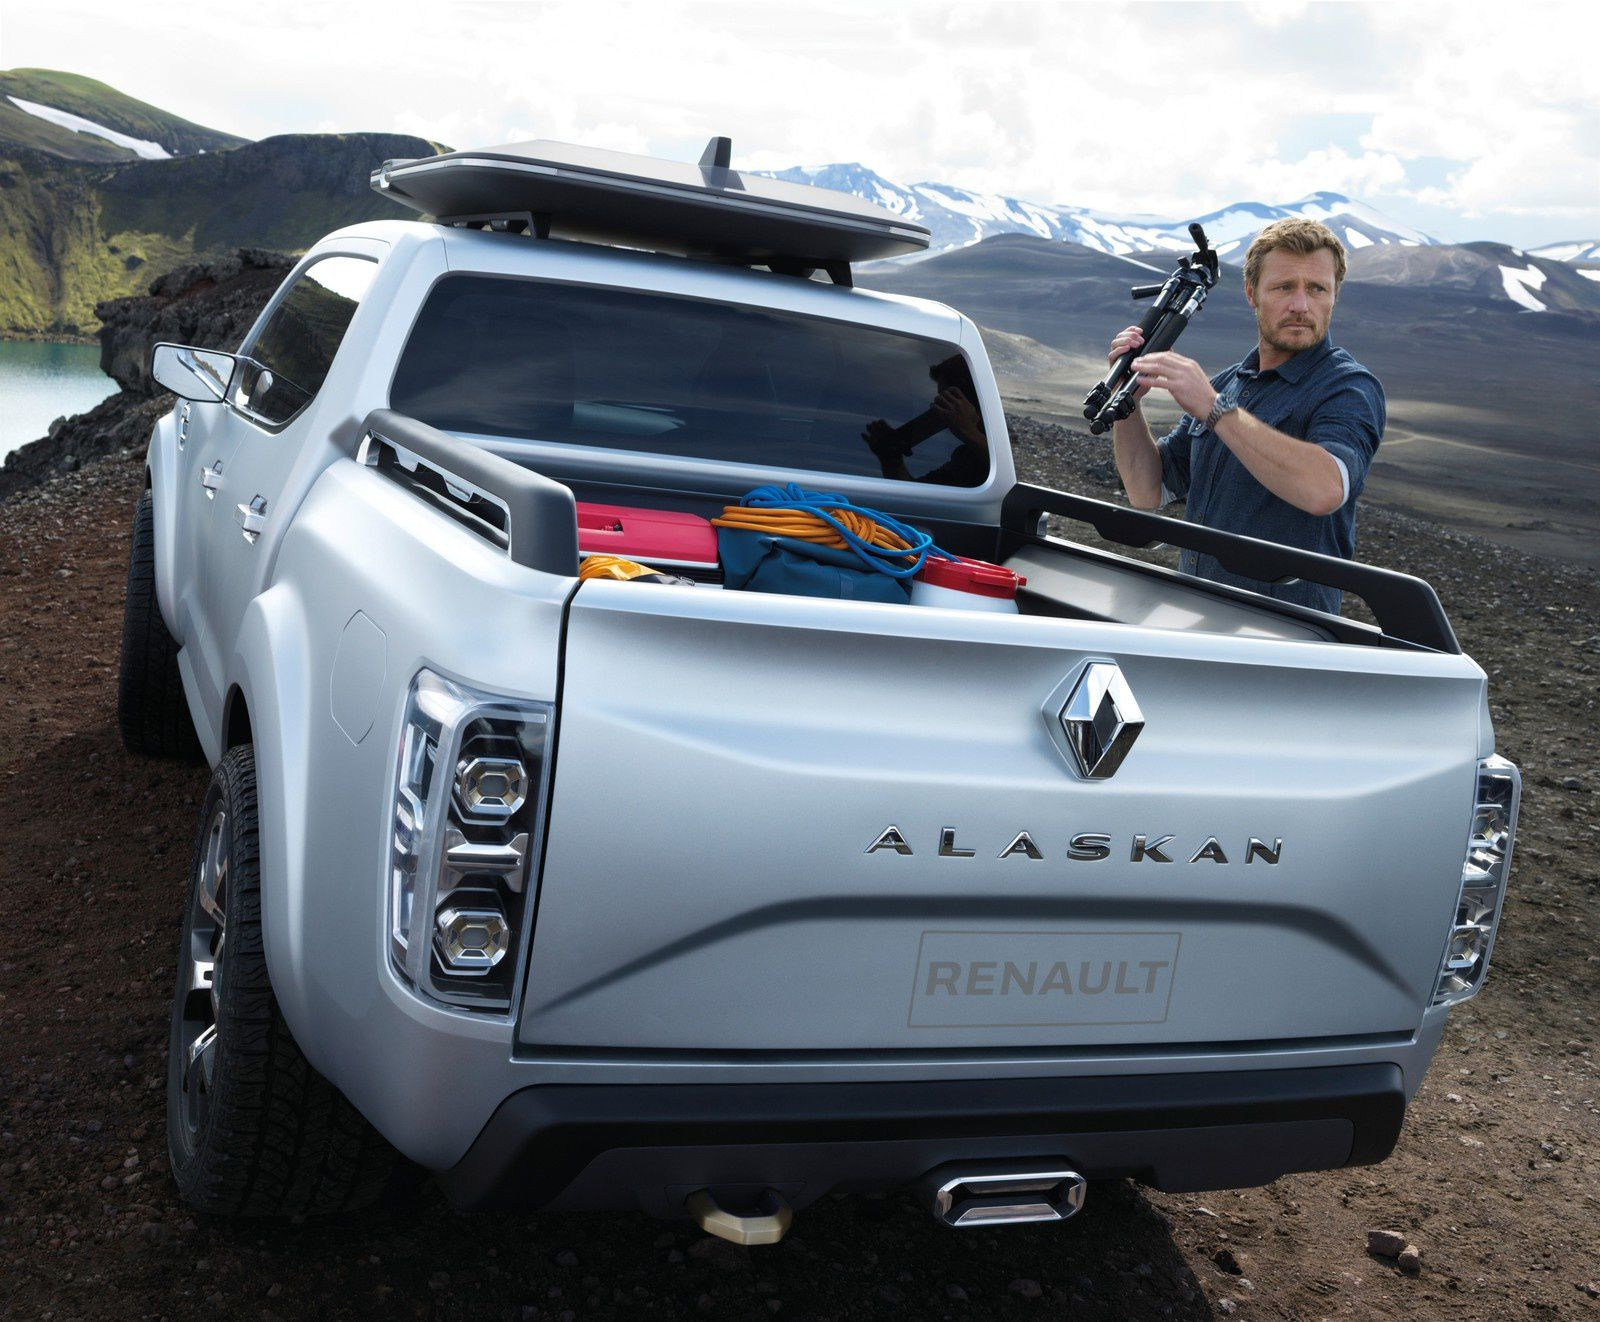 RENAULT ALASKAN - THE TRUCK FROM FRANCE !